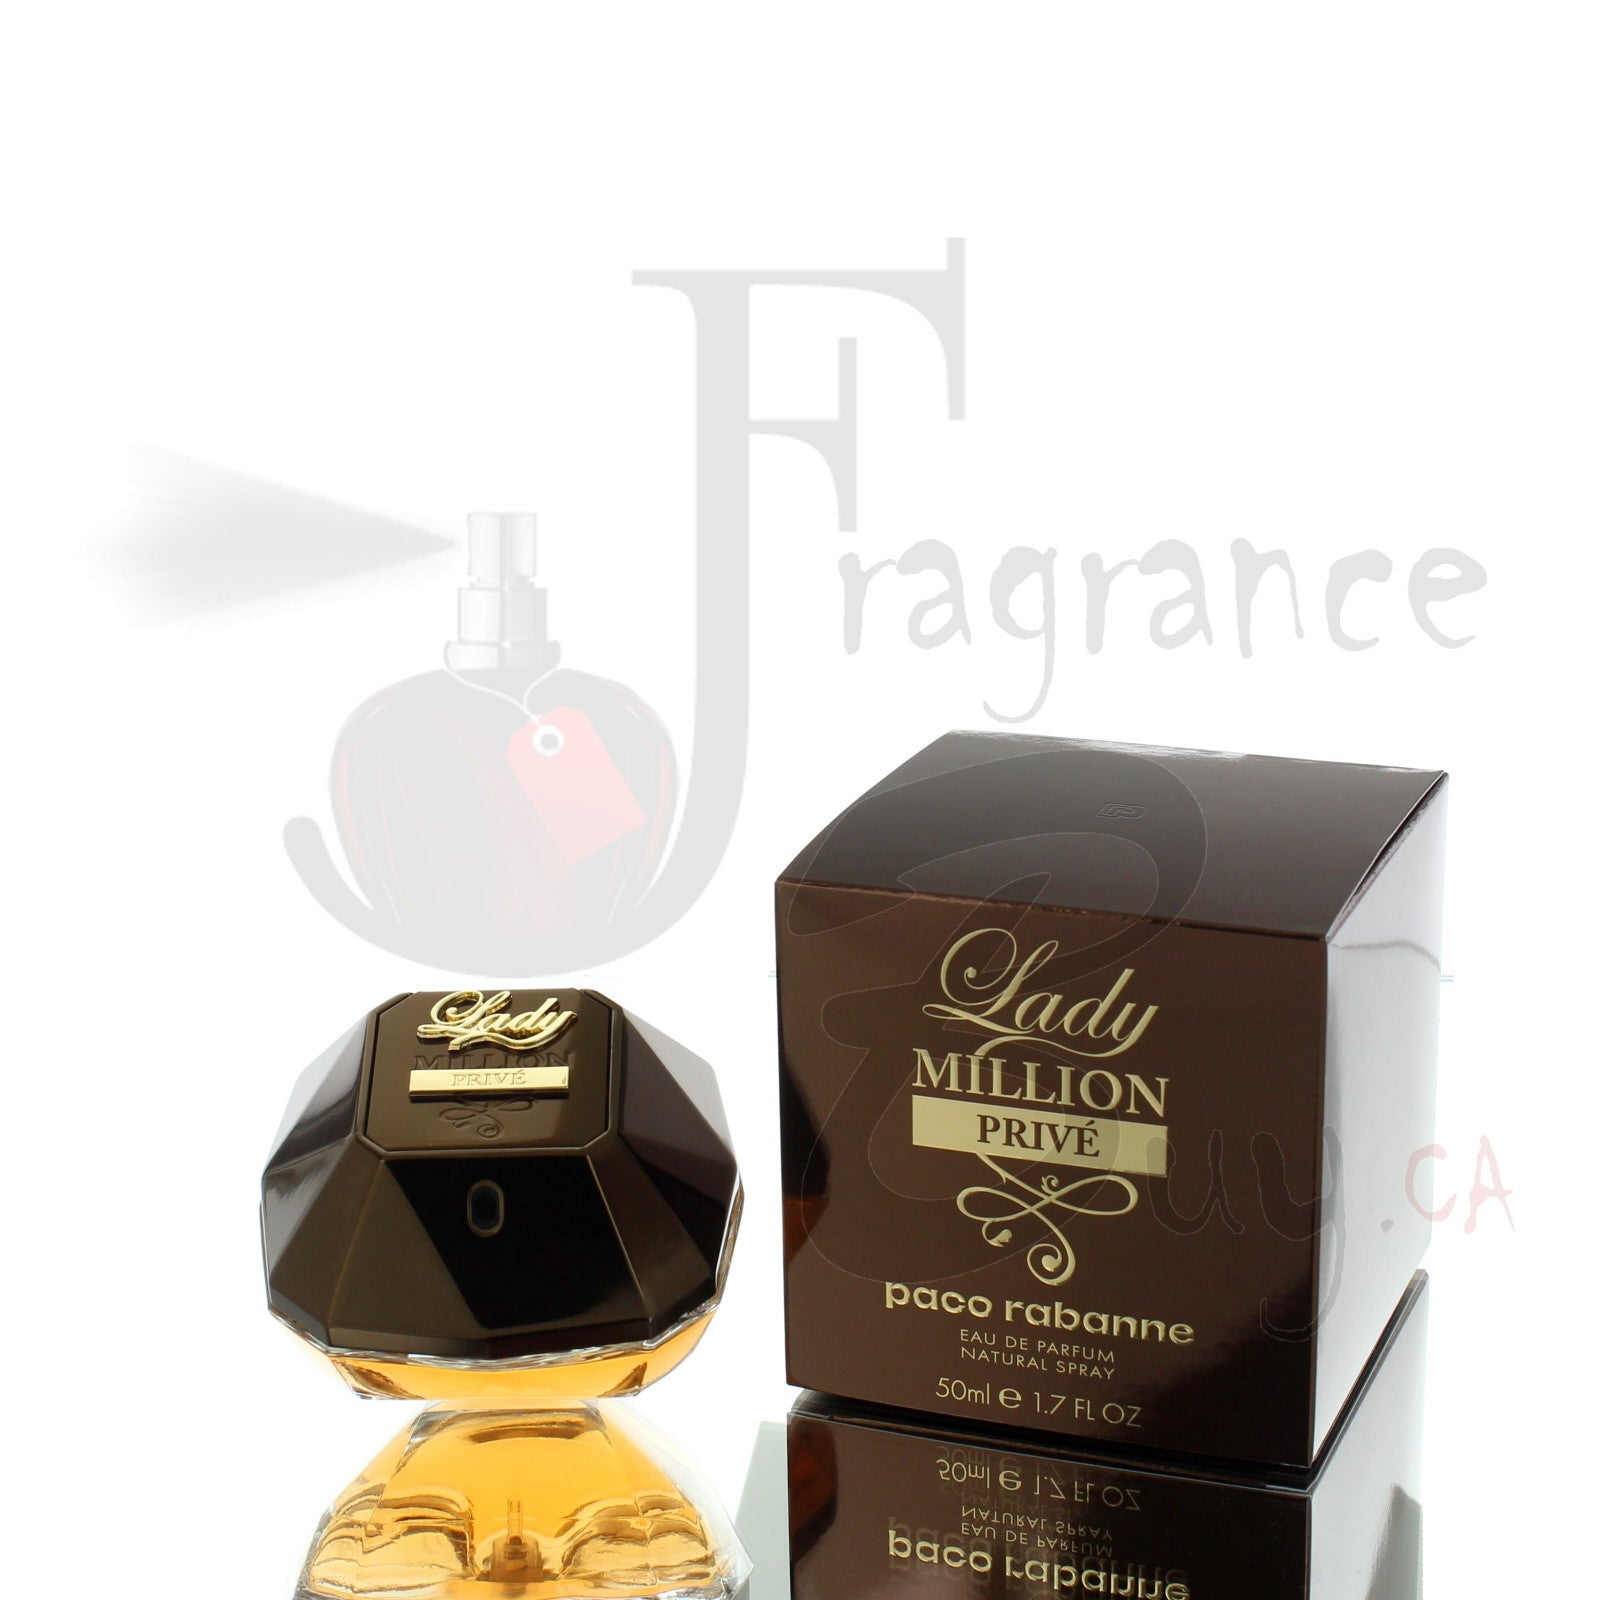 Lady Million Prive by Paco Rabanne For Woman